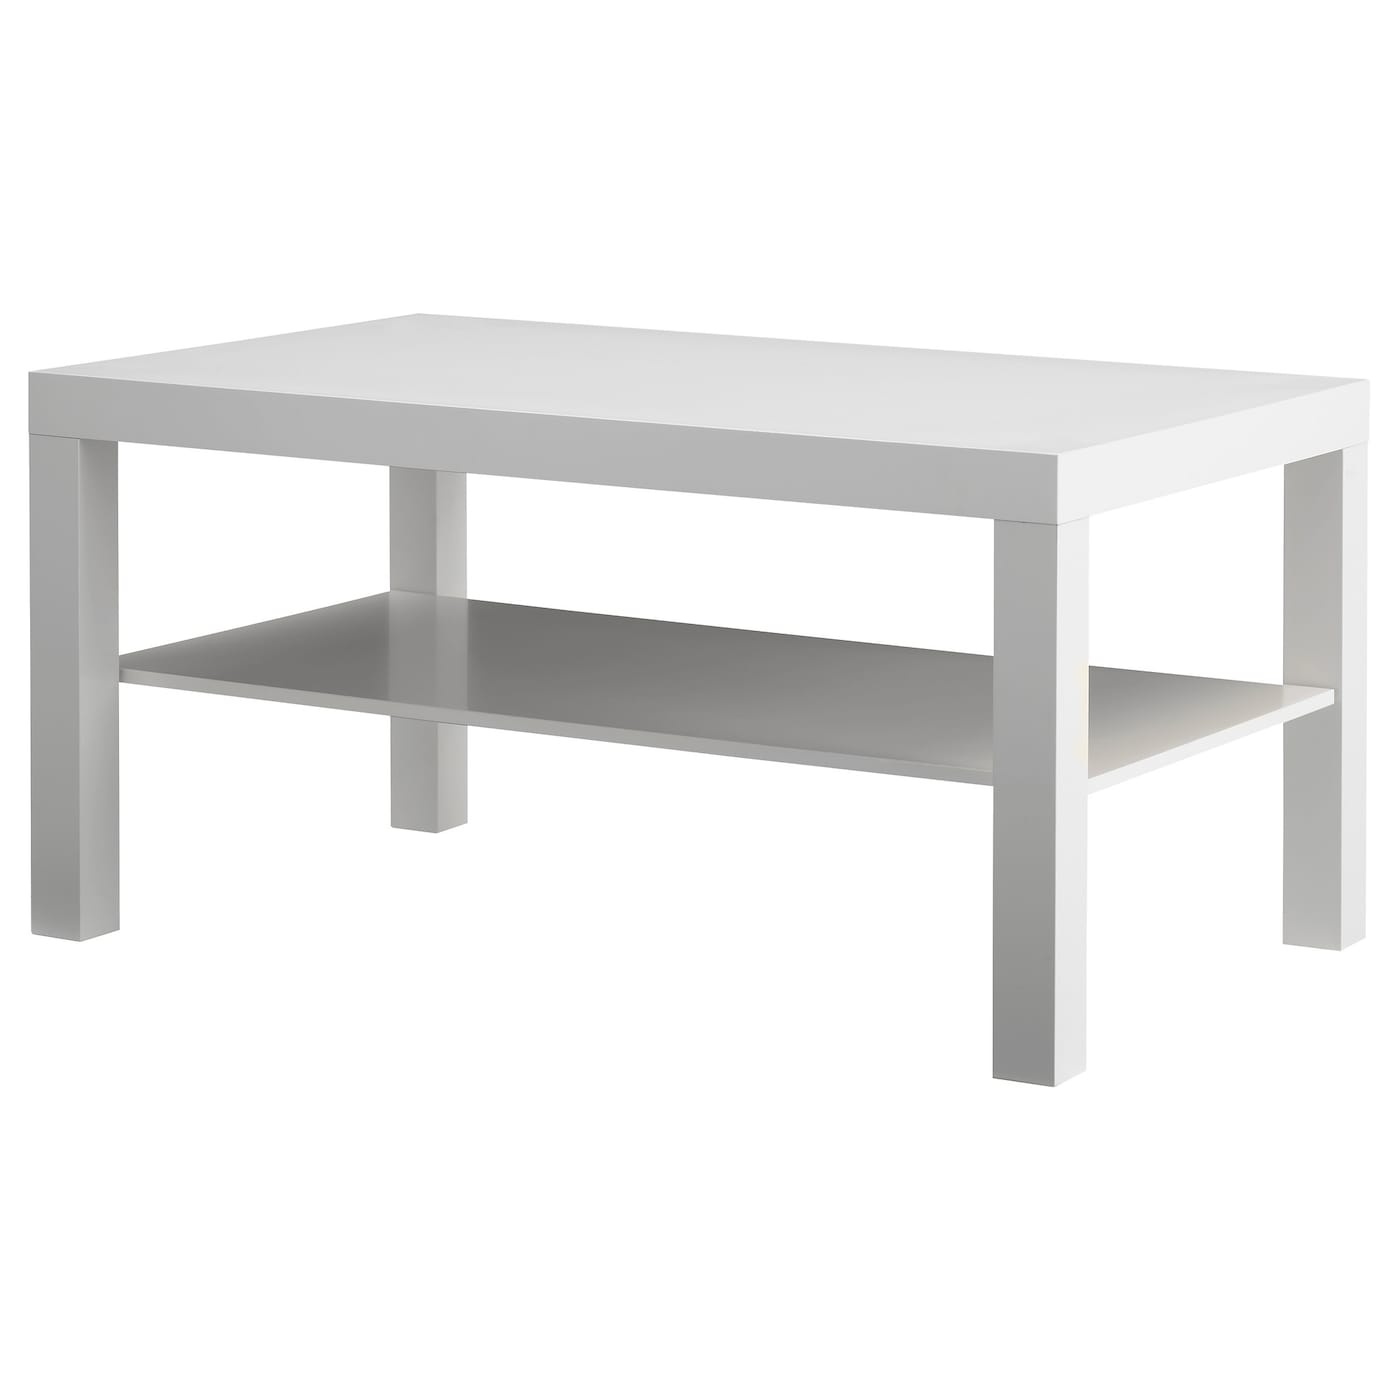 LACK Coffee table White 90x55 cm IKEA